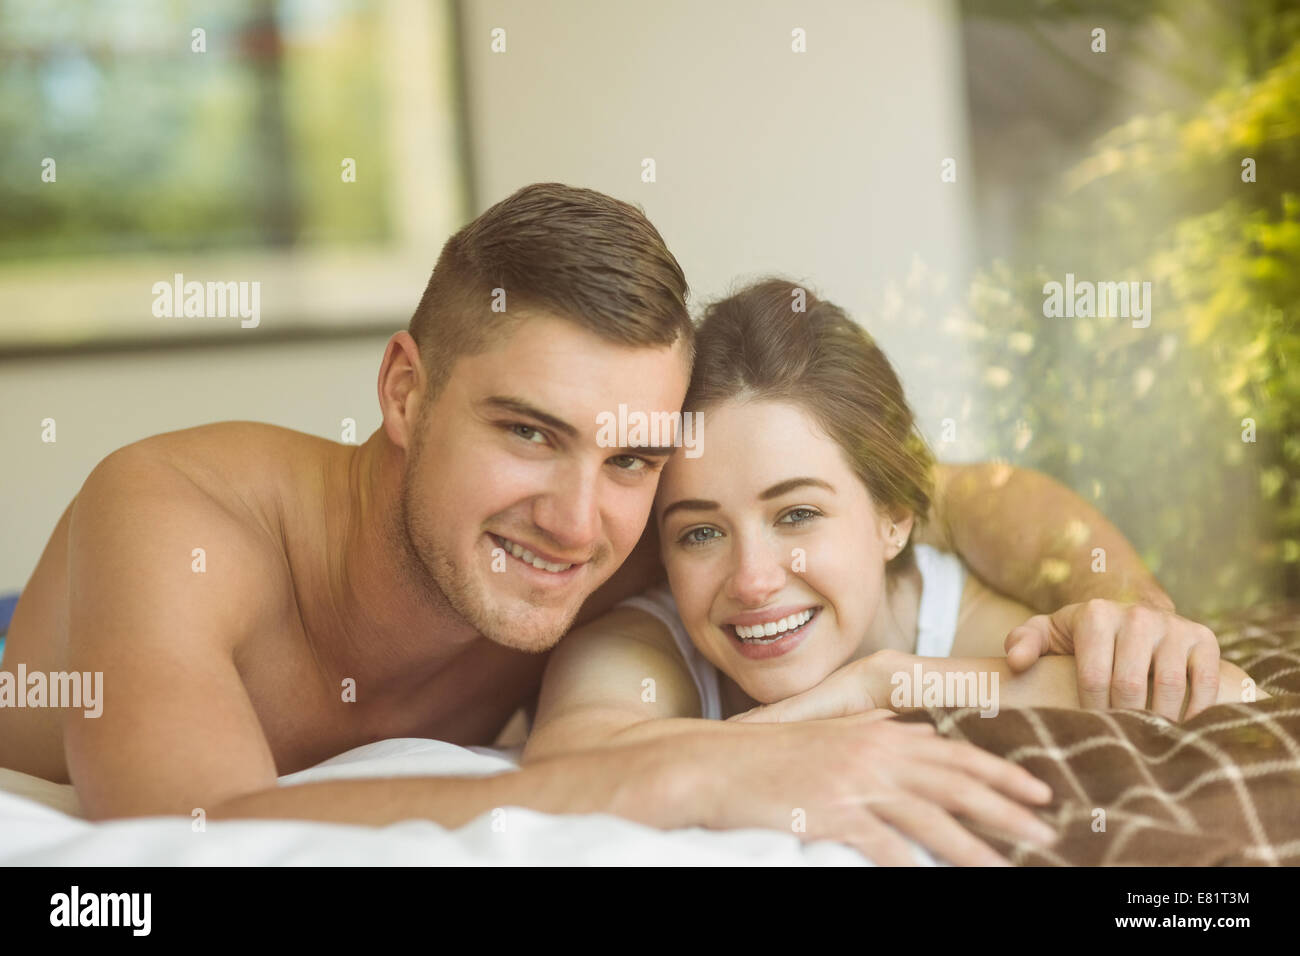 Cute couple lying on bed - Stock Image